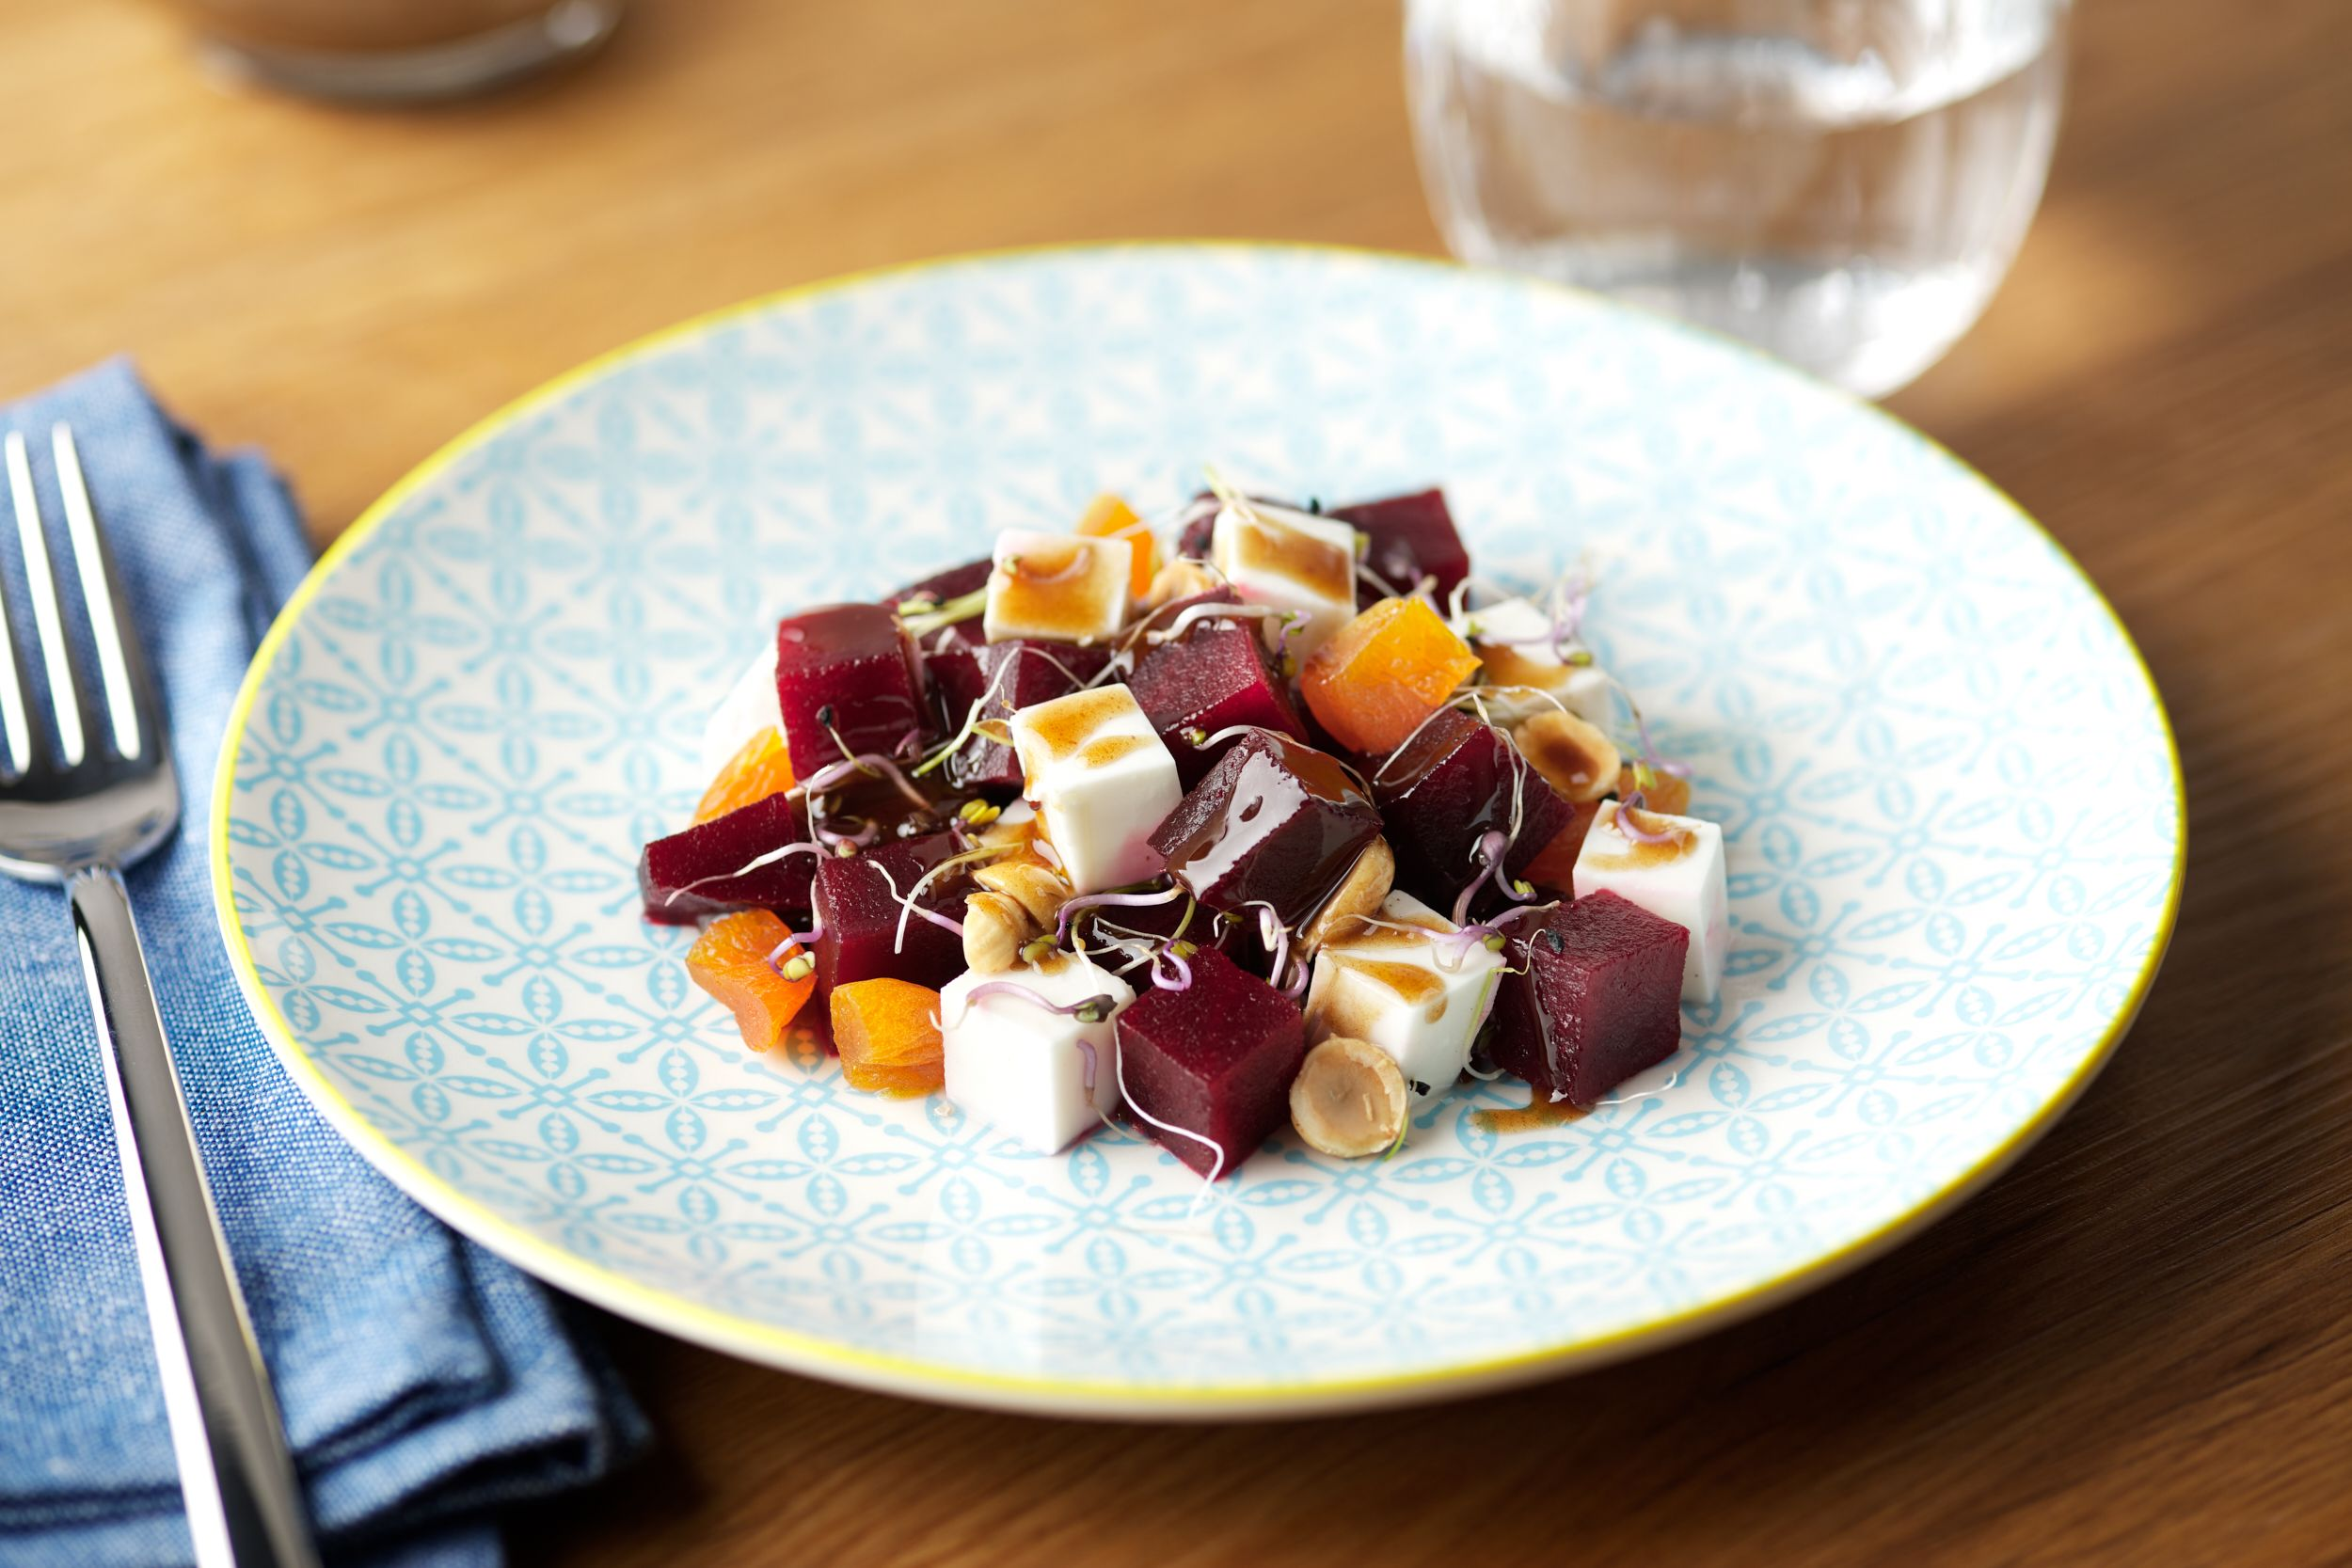 {Beetroot salad with dried apricots and hazelnuts}